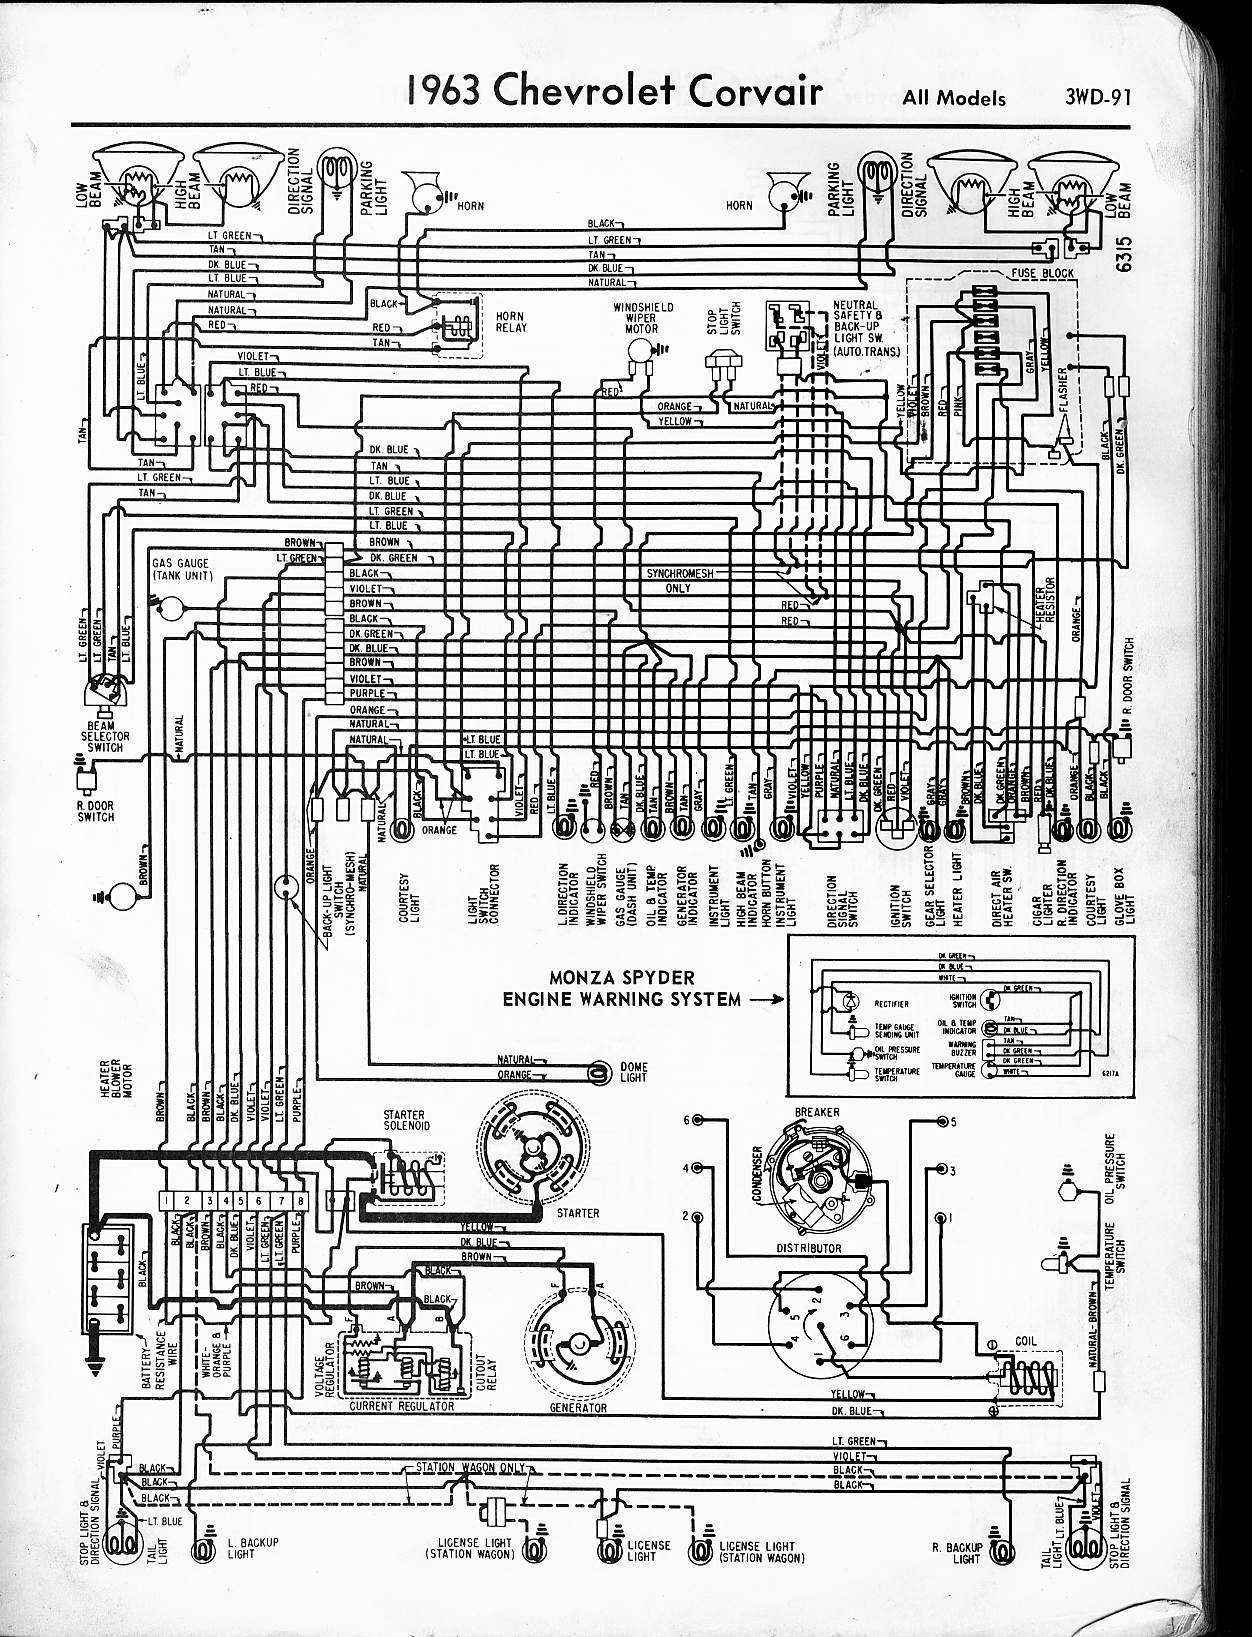 1969 chevrolet corvette wiring diagram wiring library 1969 corvette wiring schematic 1960 corvette starter wiring diagram detailed schematics diagram rh mrskindsclass com 1970 corvette wiring diagram 1968